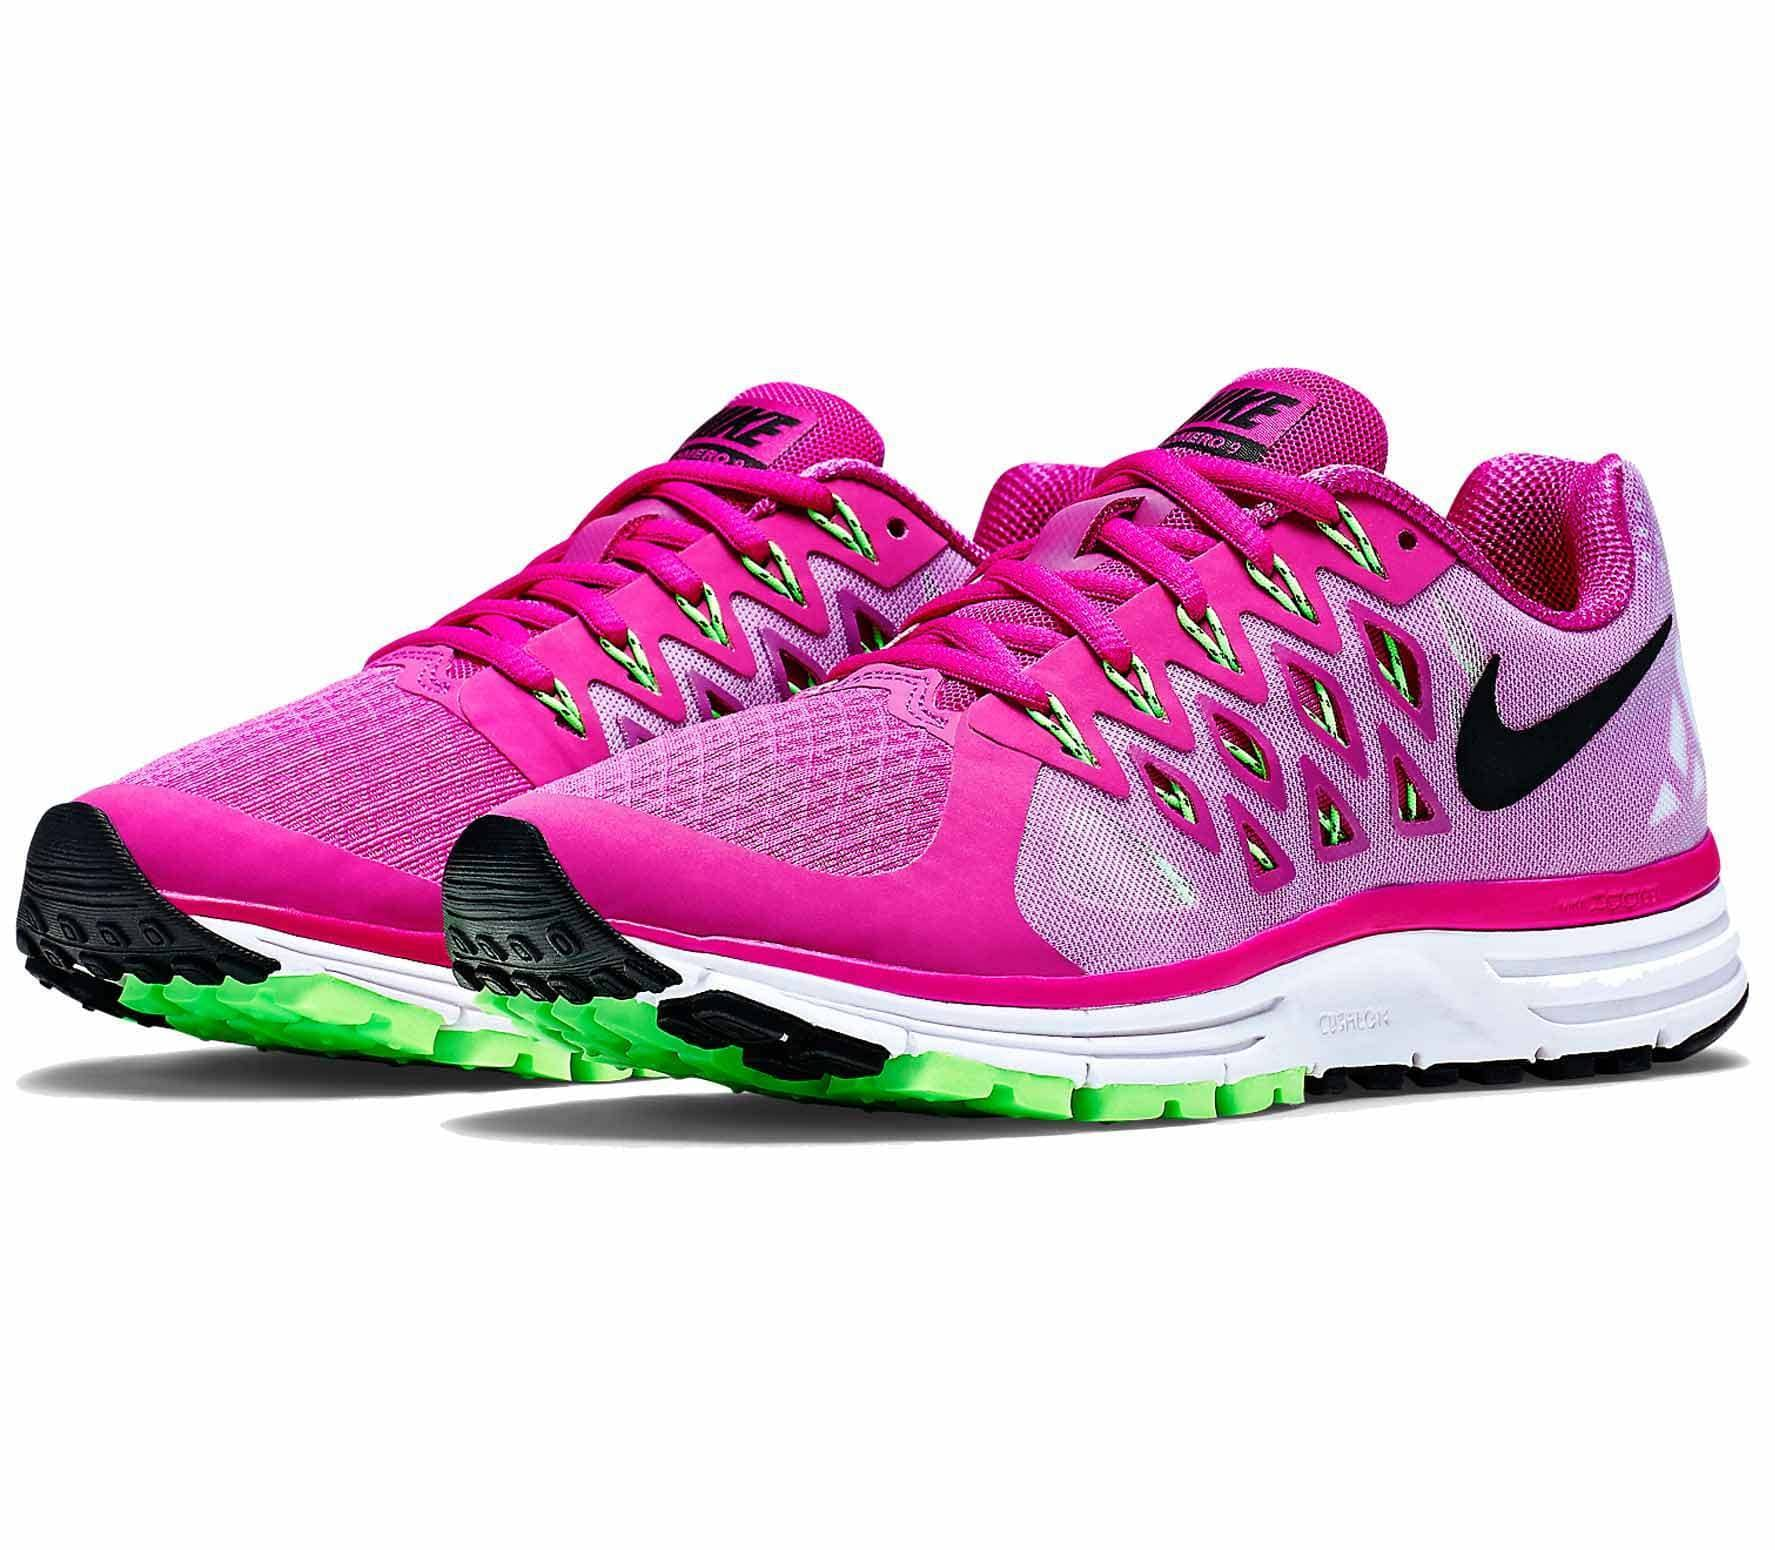 865eddeb6997 ... purchase nike zoom vomero 9 womens running shoes pink white b72a5 f4012